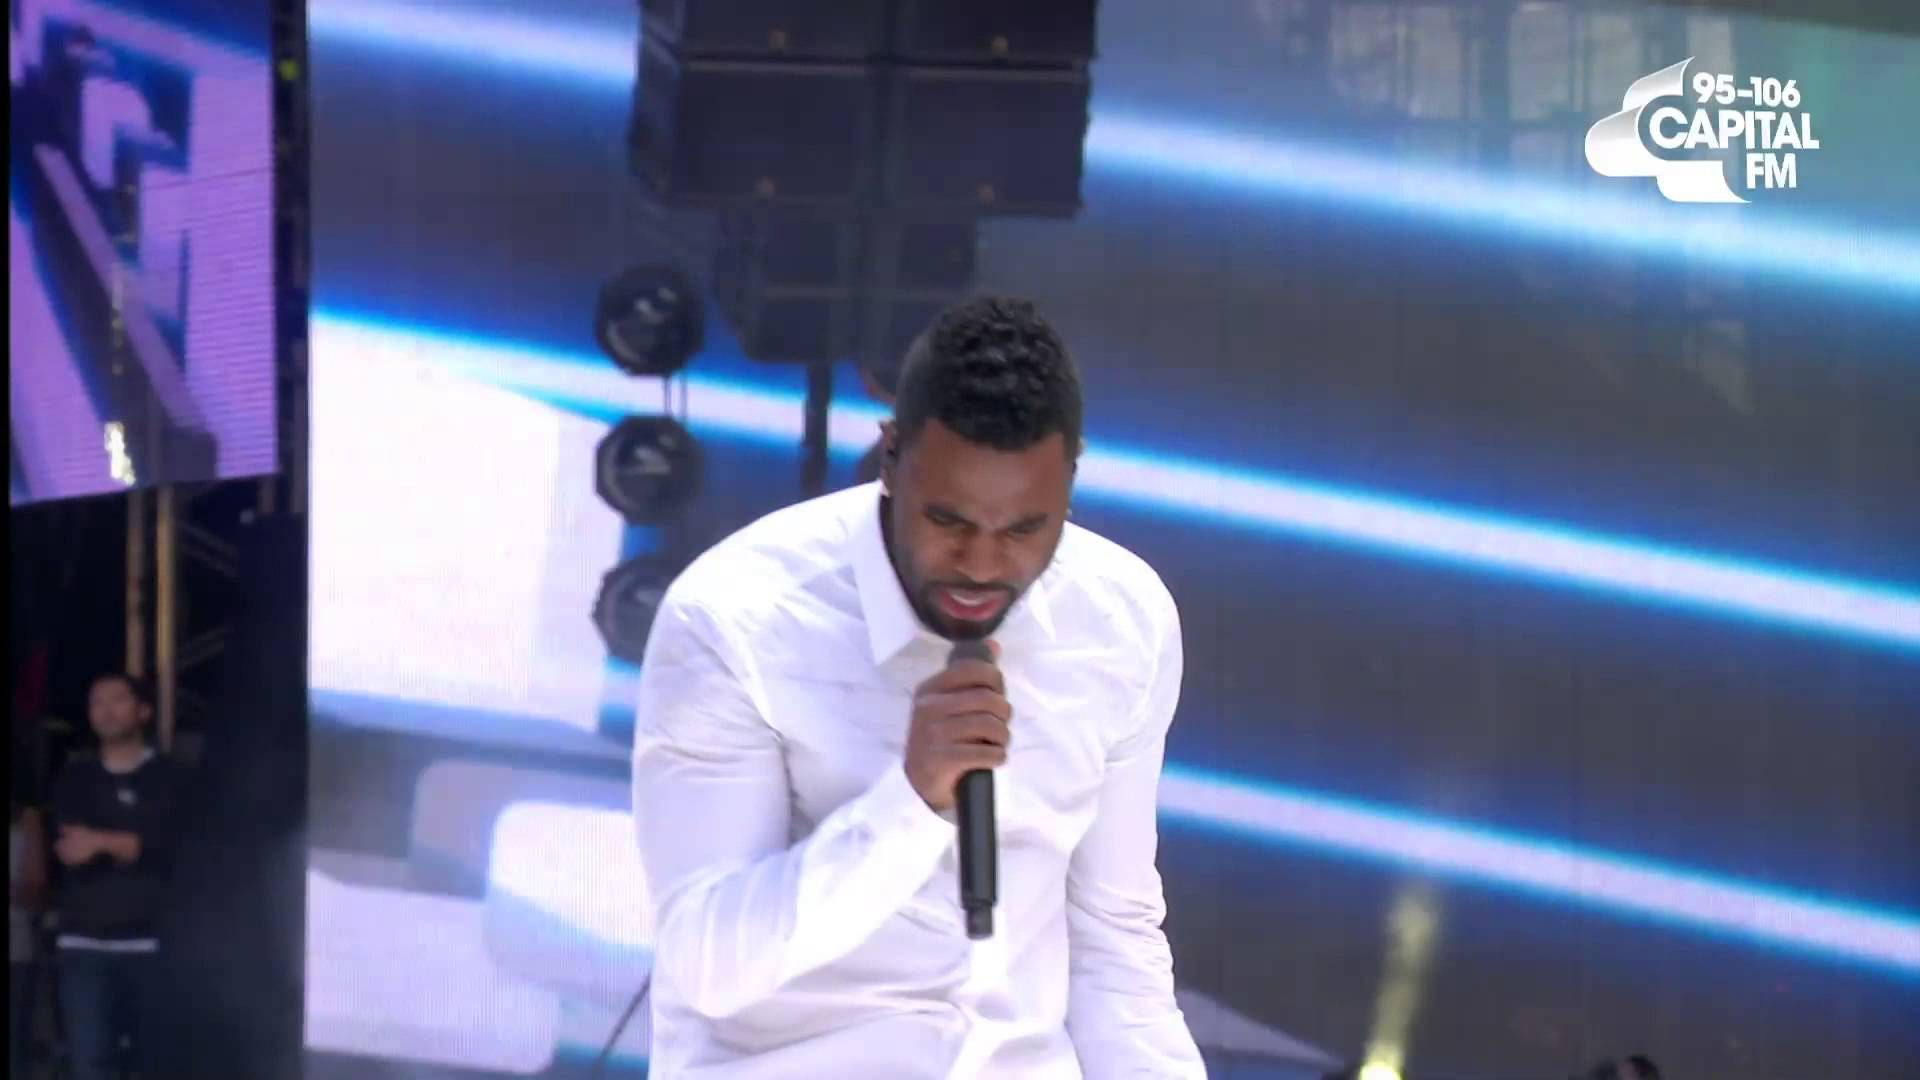 Jason Derulo - 'The Other Side' (Summertime Ball 2015)